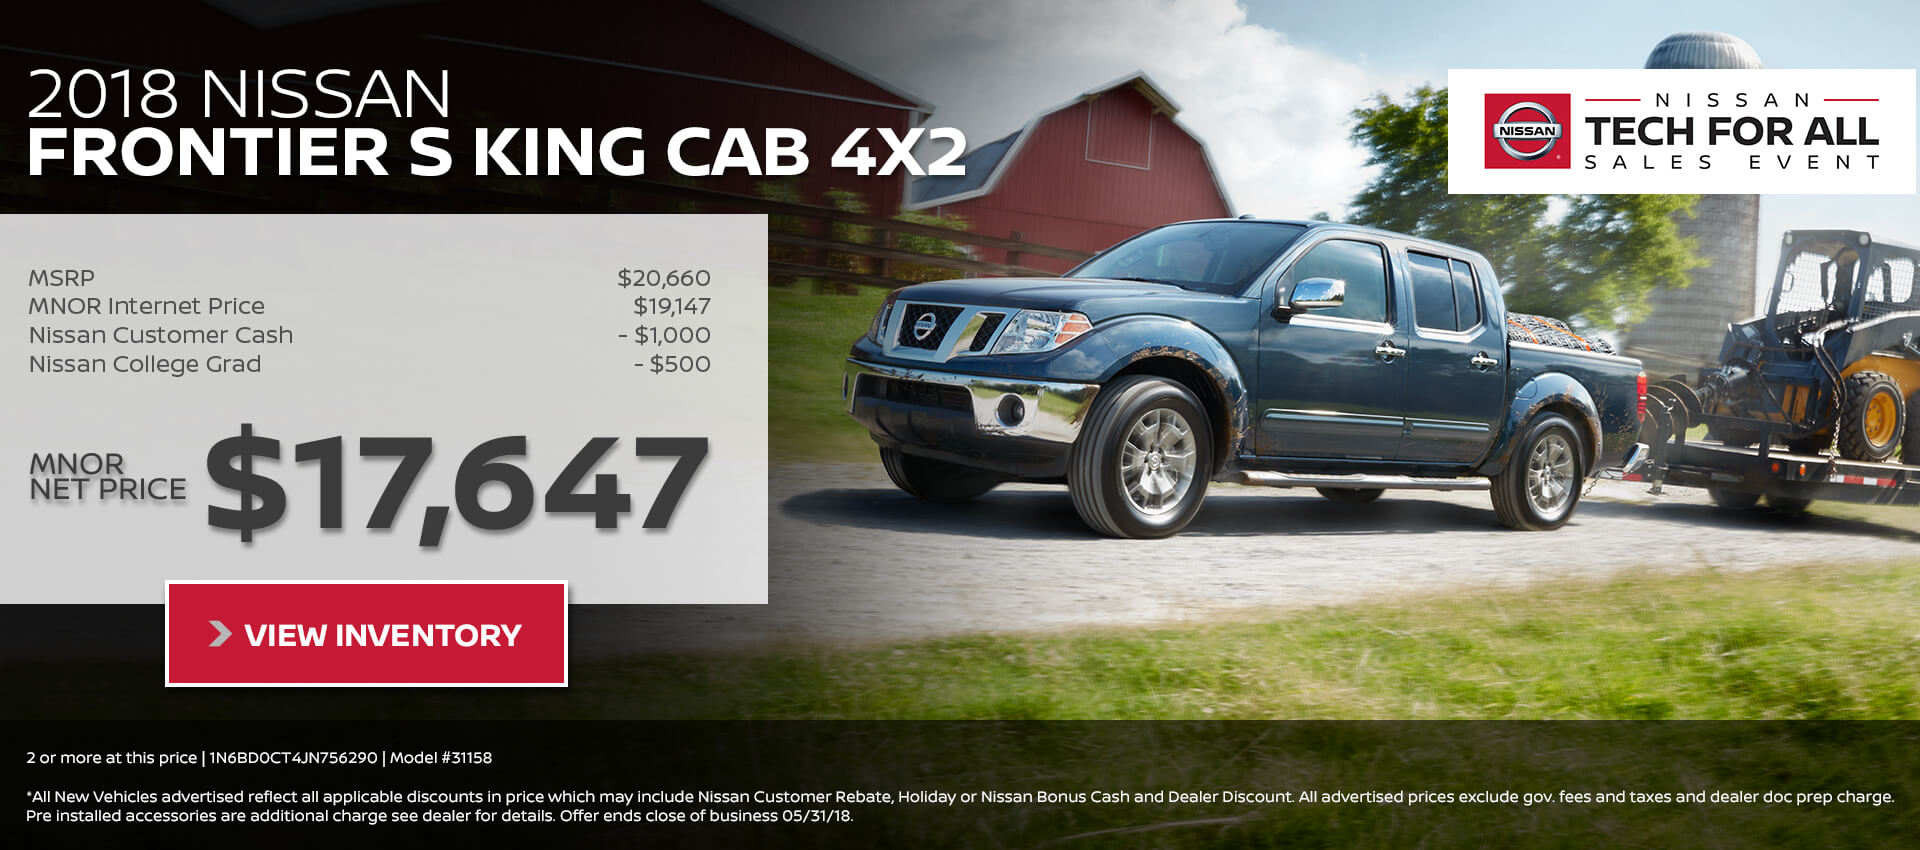 2018 Nissan Frontier King Cab $17,647